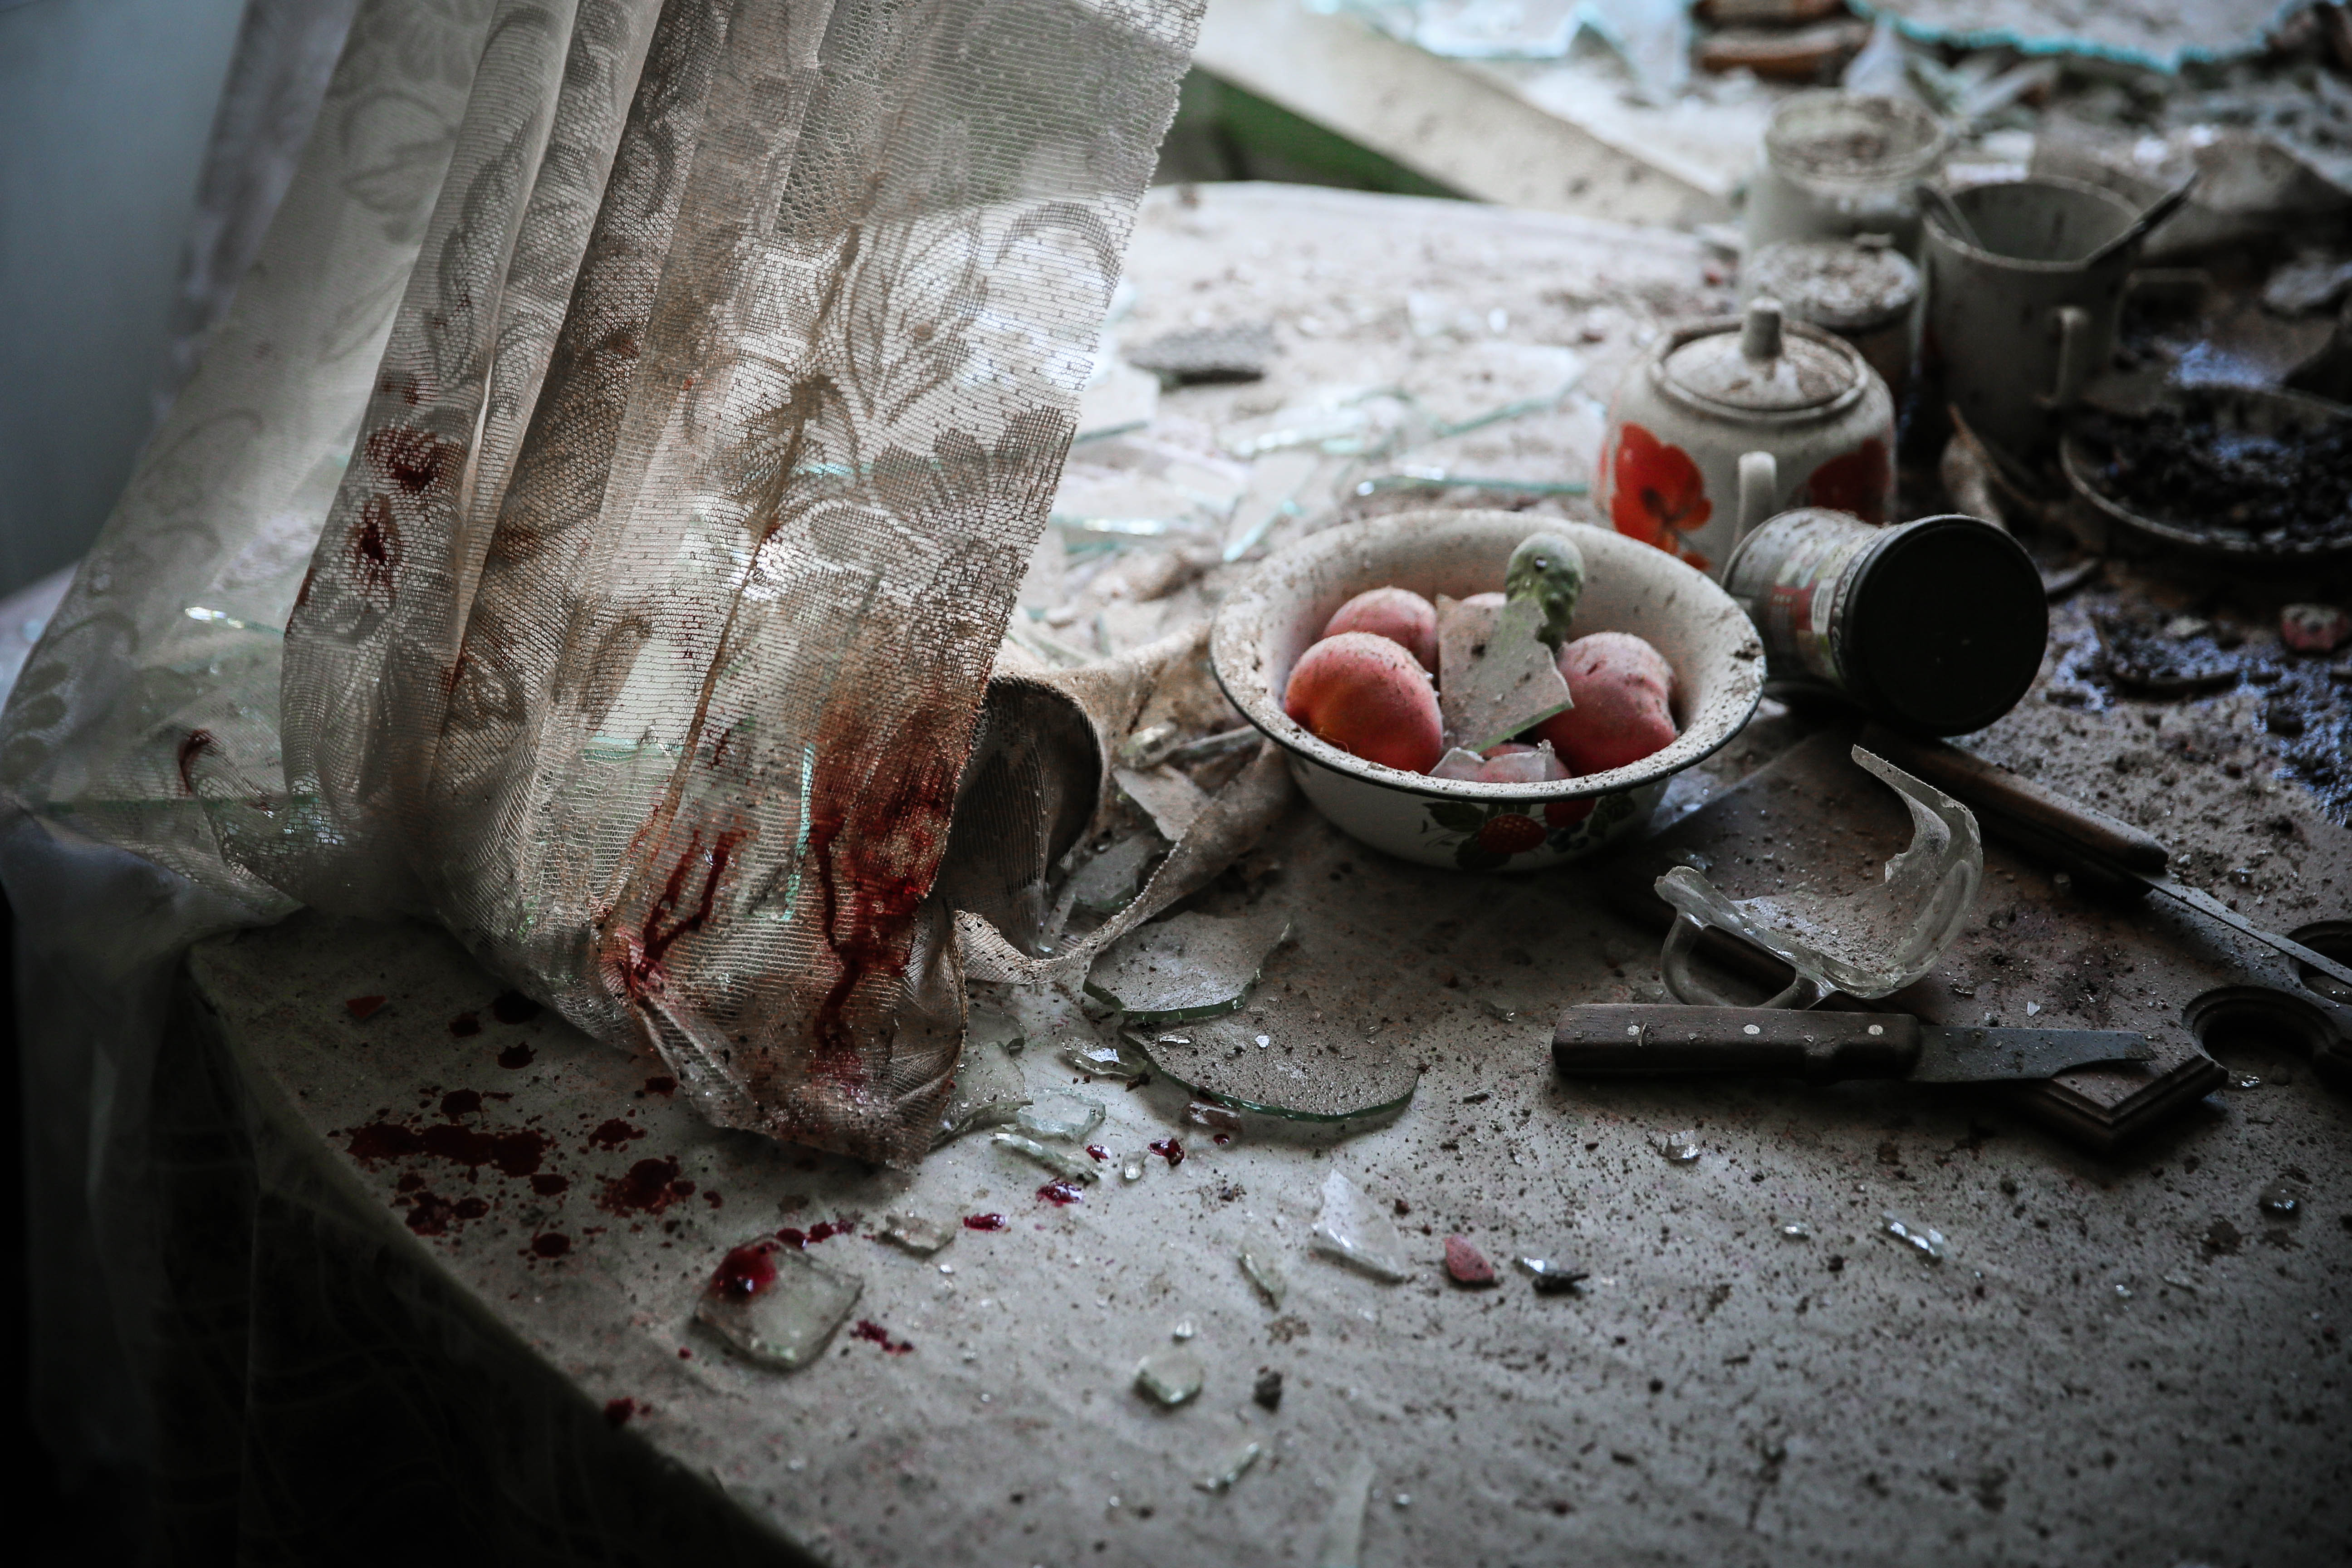 Damaged goods lie in a damaged kitchen in downtown Donetsk, Ukraine, 26 August 2014. Residential areas in several districts of Donetsk, including the central part of the city, suffered from artillery fire, three people was killed and 10 wounded, the press centre of Donetsk city Council reported.